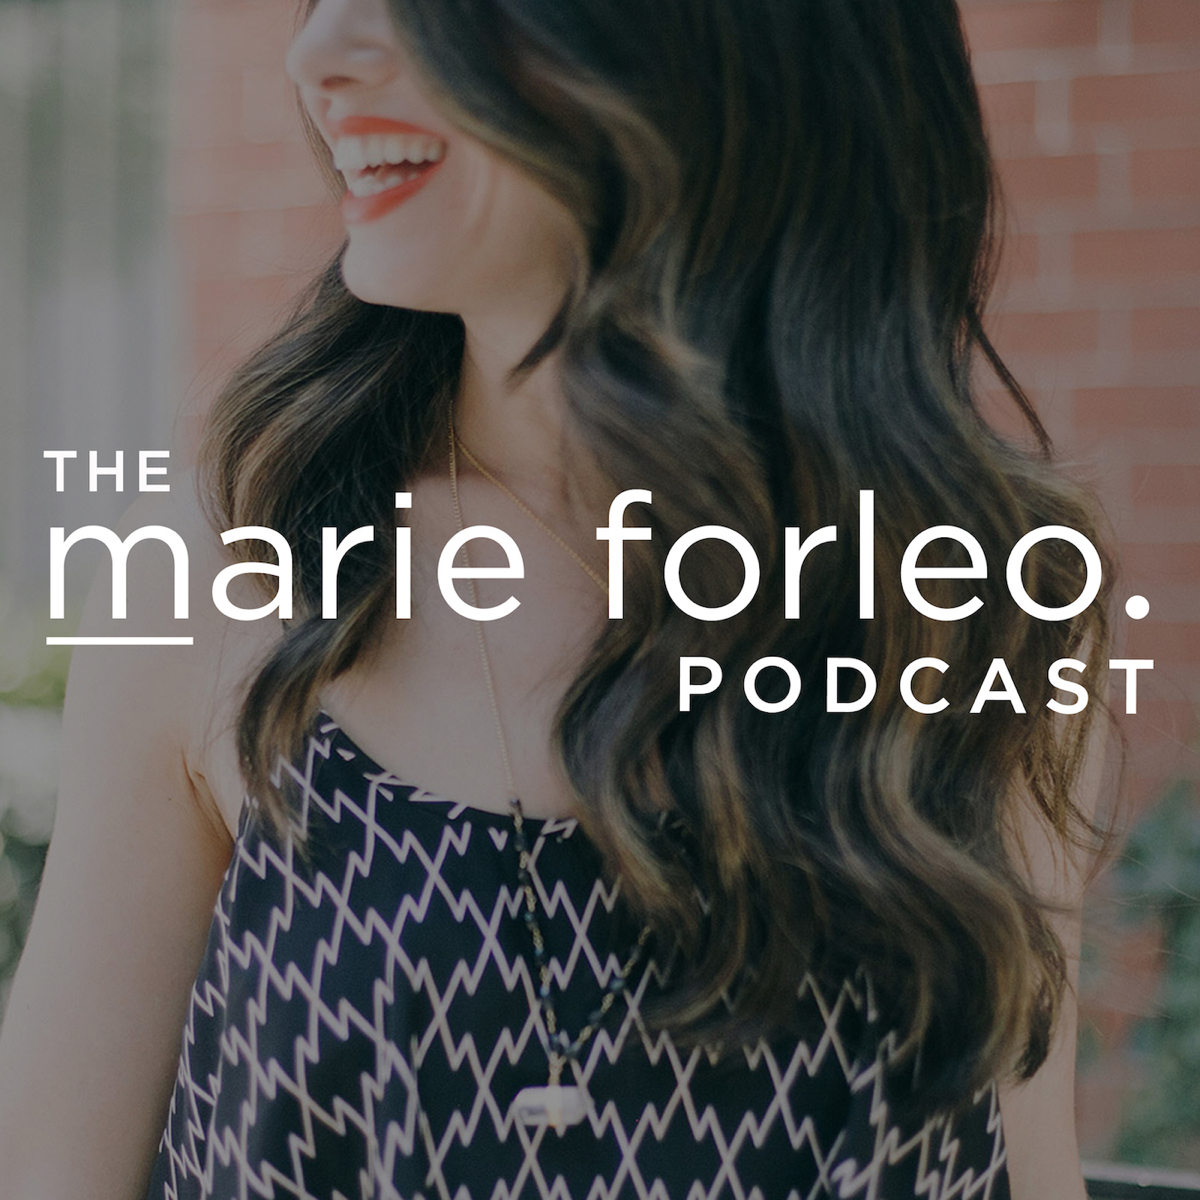 The Marie Forleo Podcasts to listen to for personal growth